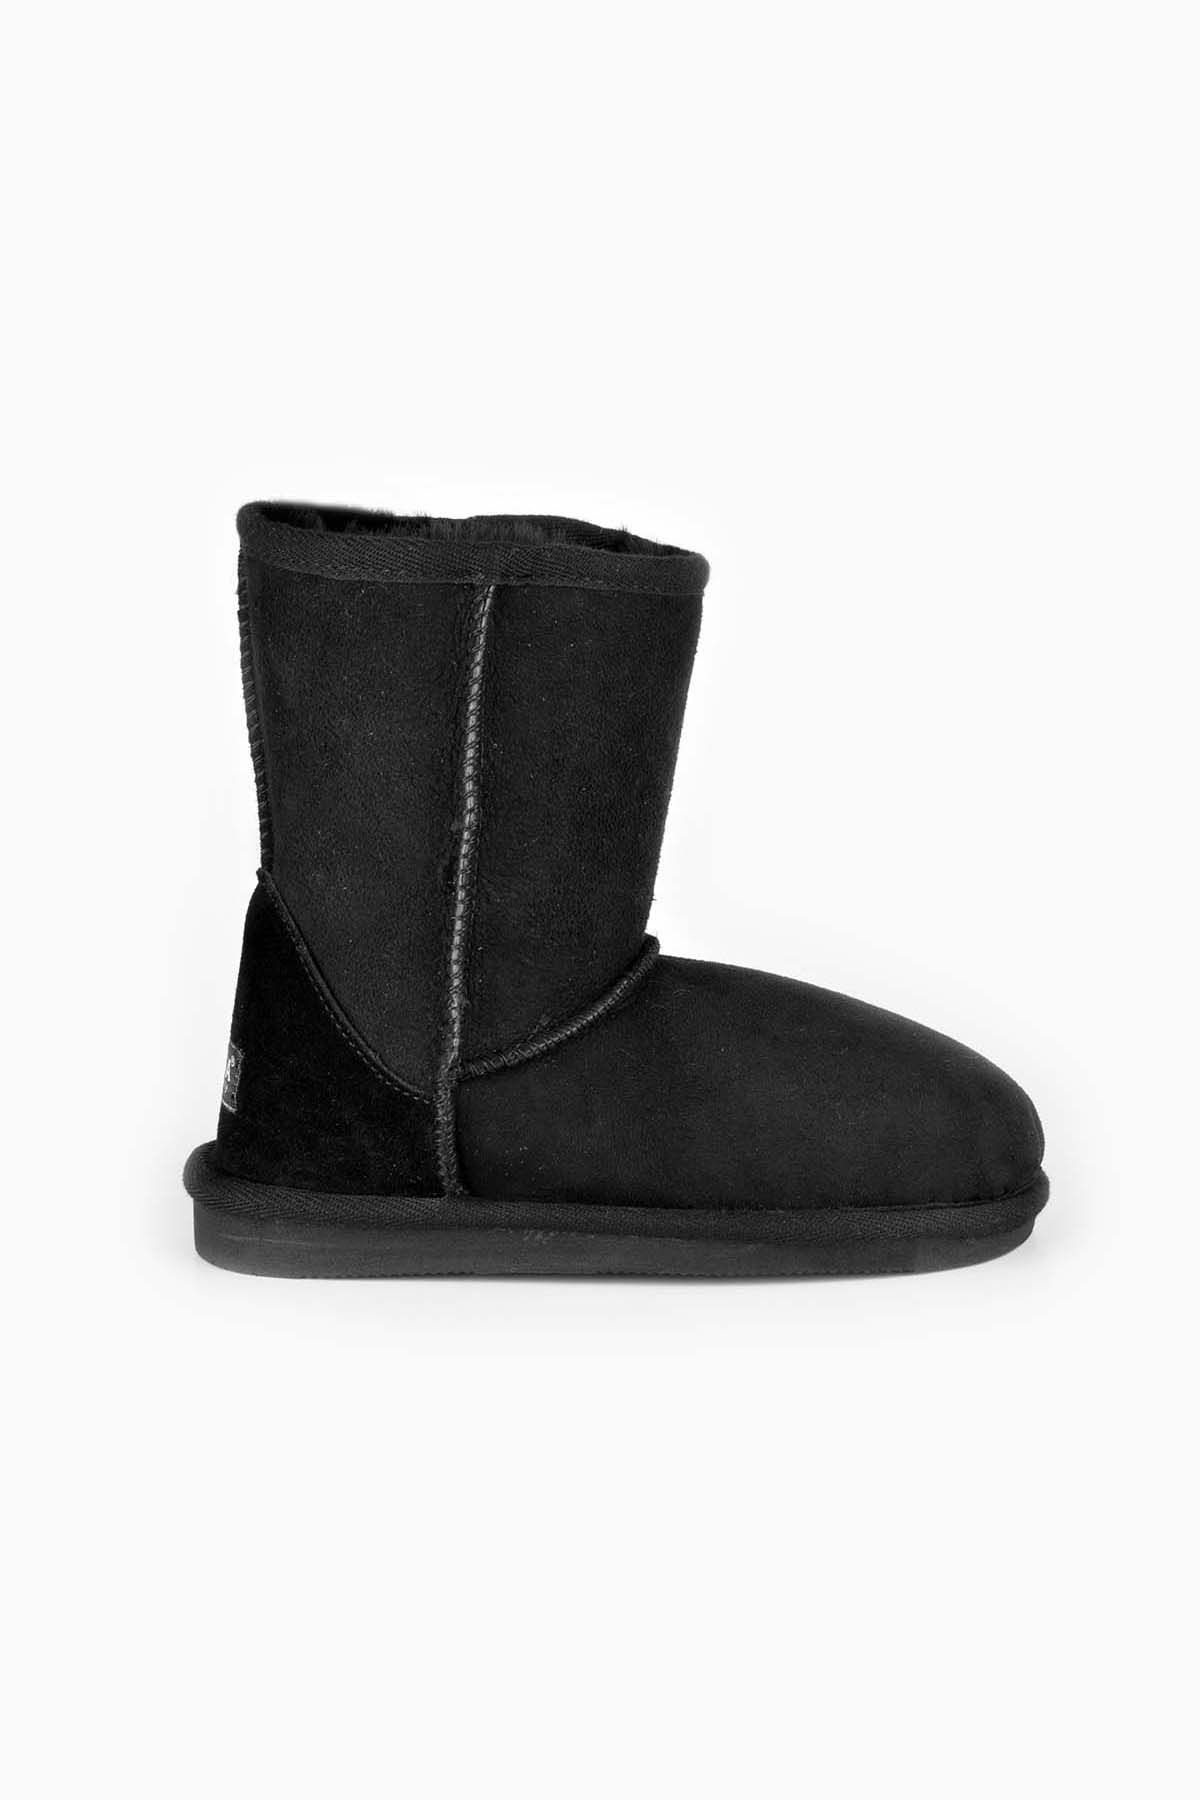 Pegia Classic Kids Boots From Genuine Suede And Sheepskin Fur Black